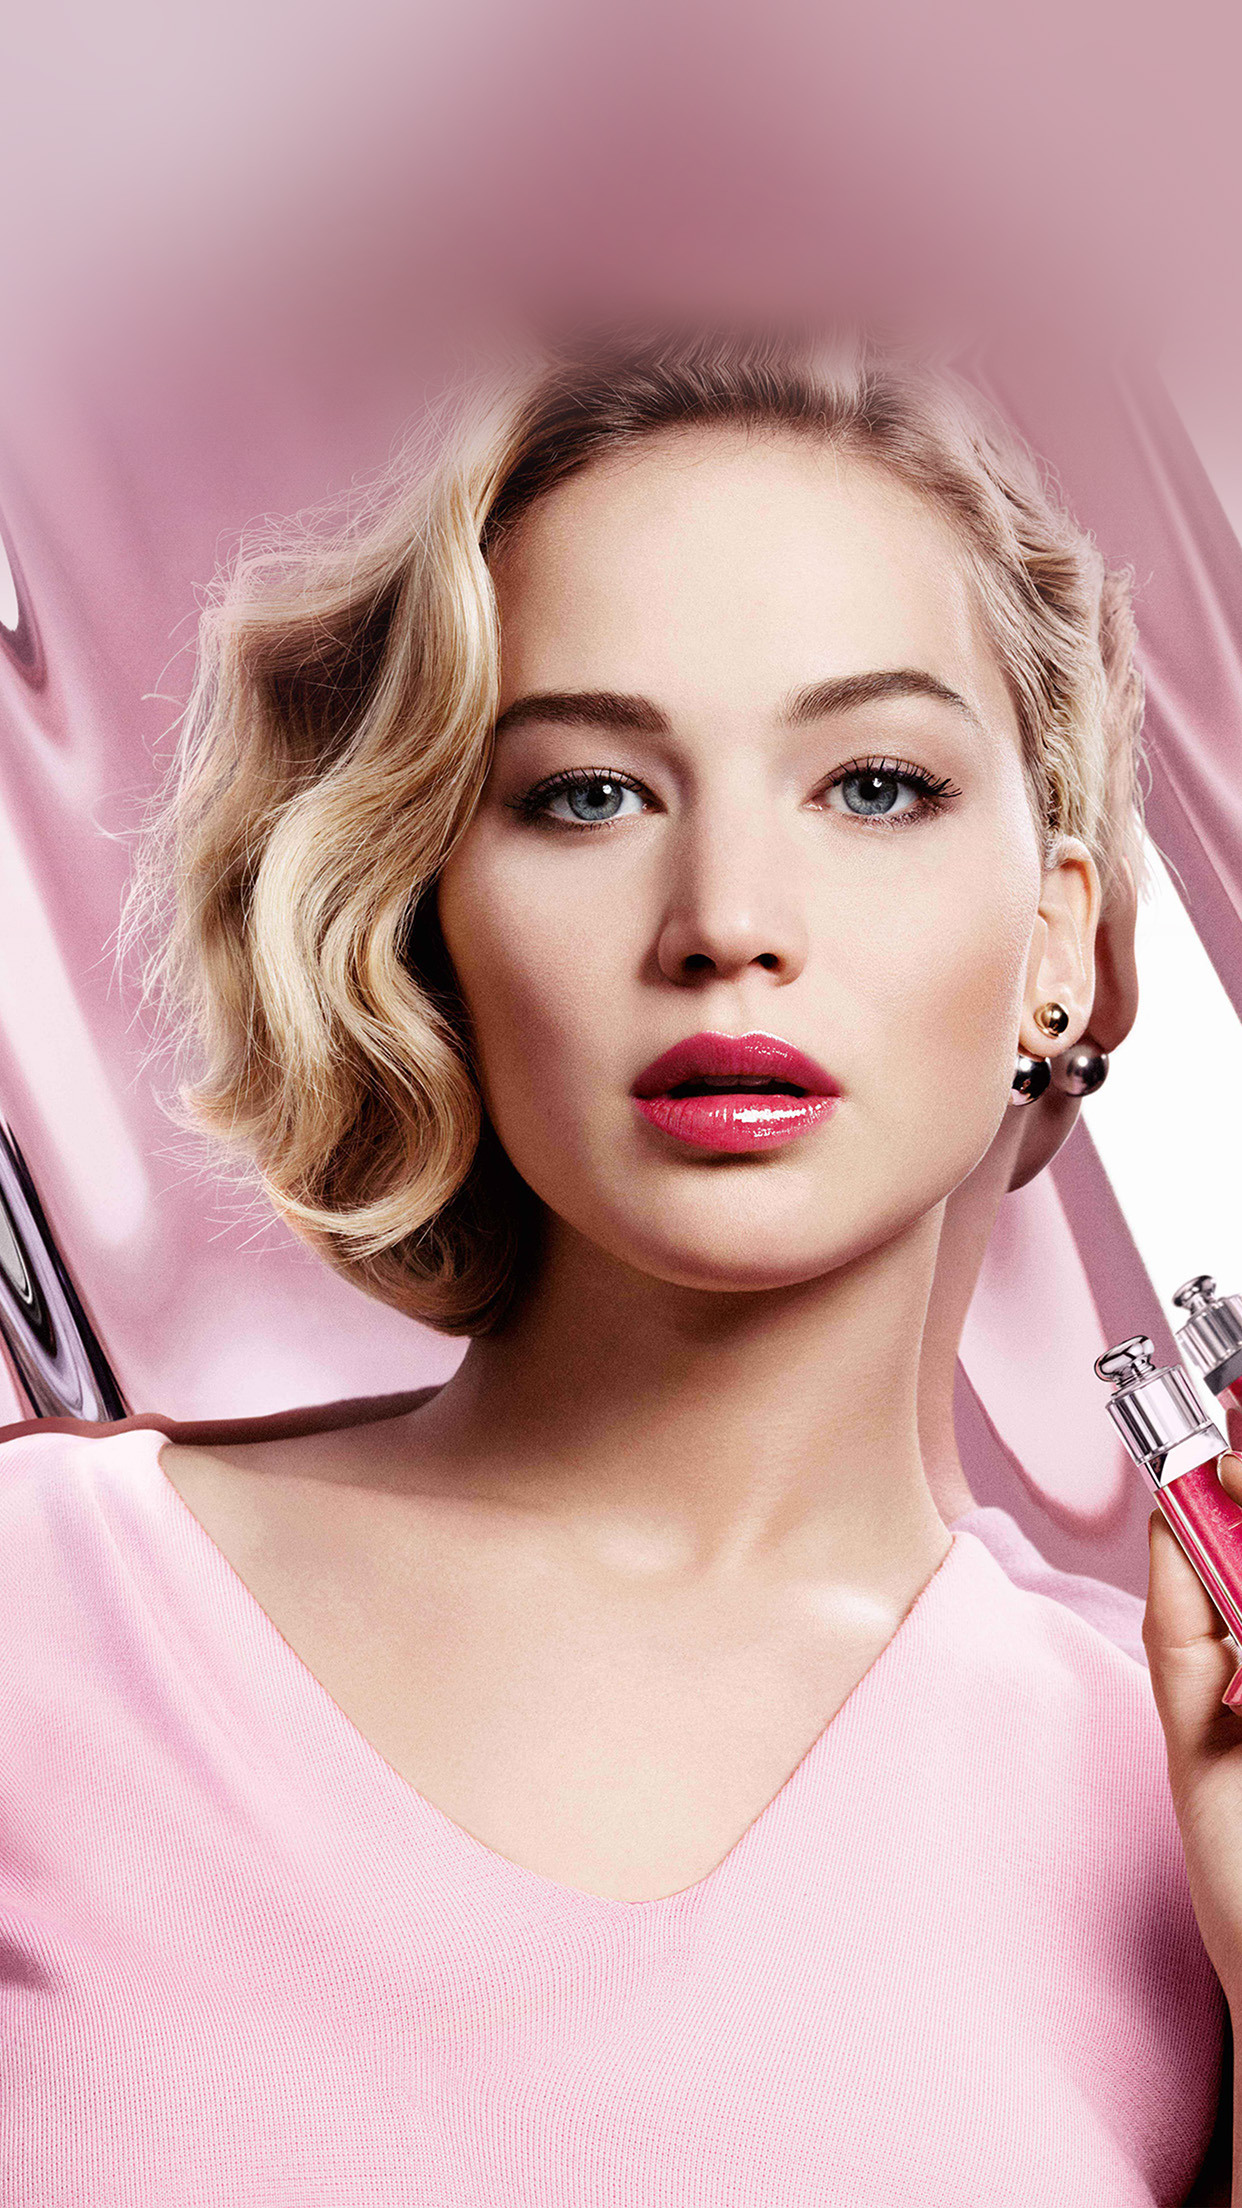 Jennifer Lawrence Pink Model Celebrity Lips Android wallpaper